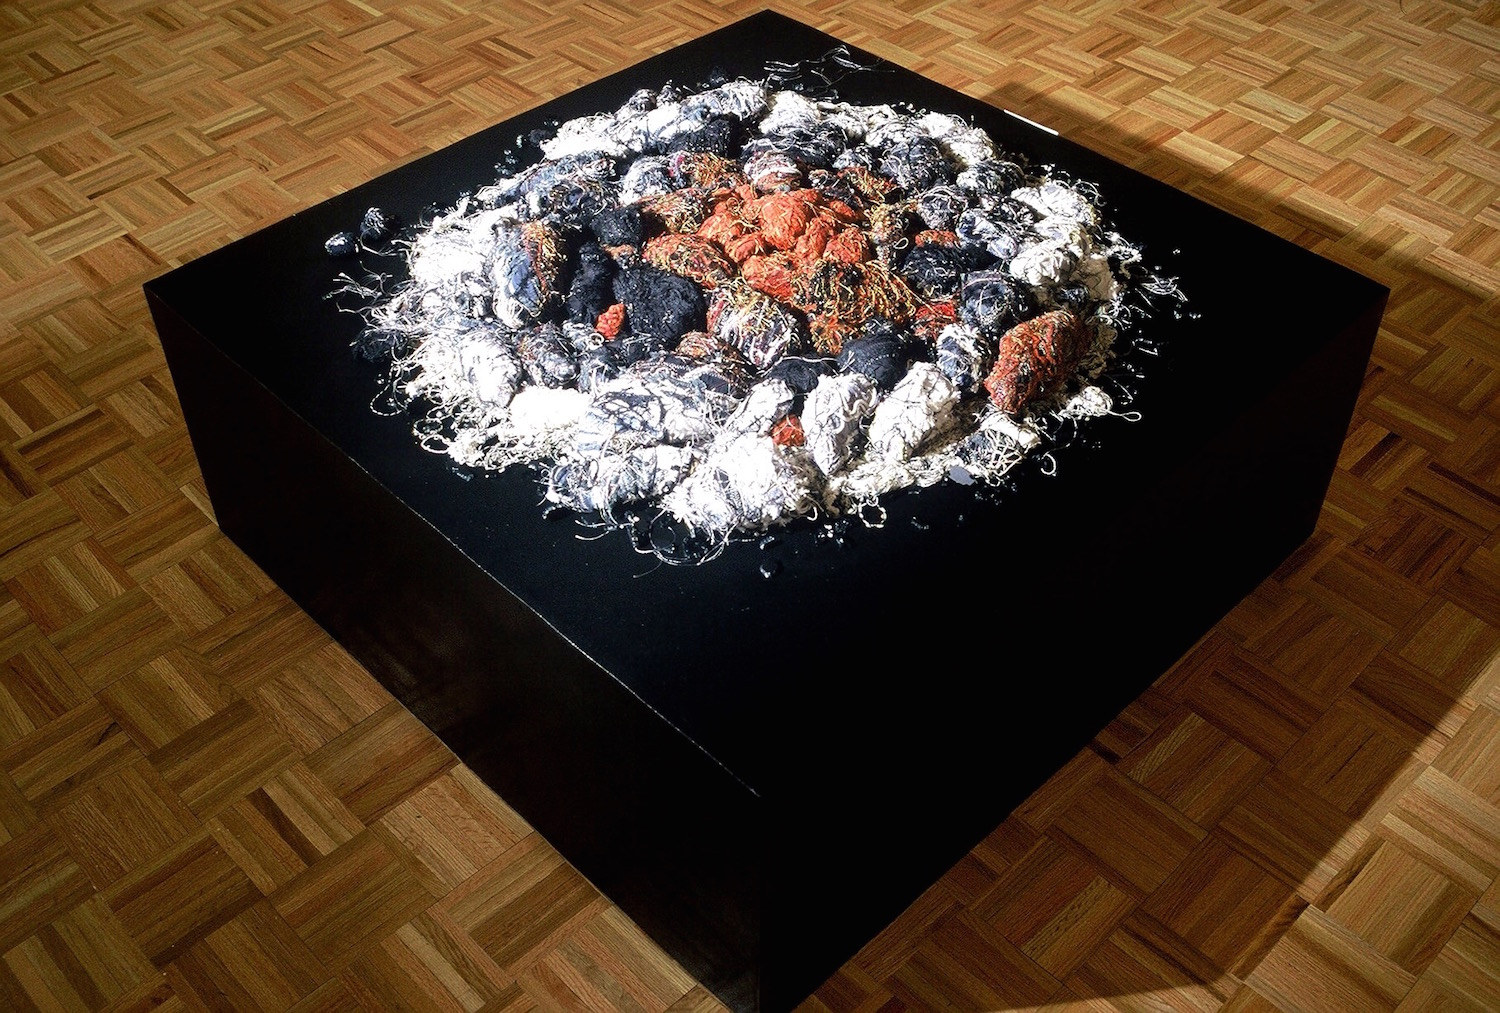 embers   hand and machine sewn fabric over rocks  variable size, as shown 3' round